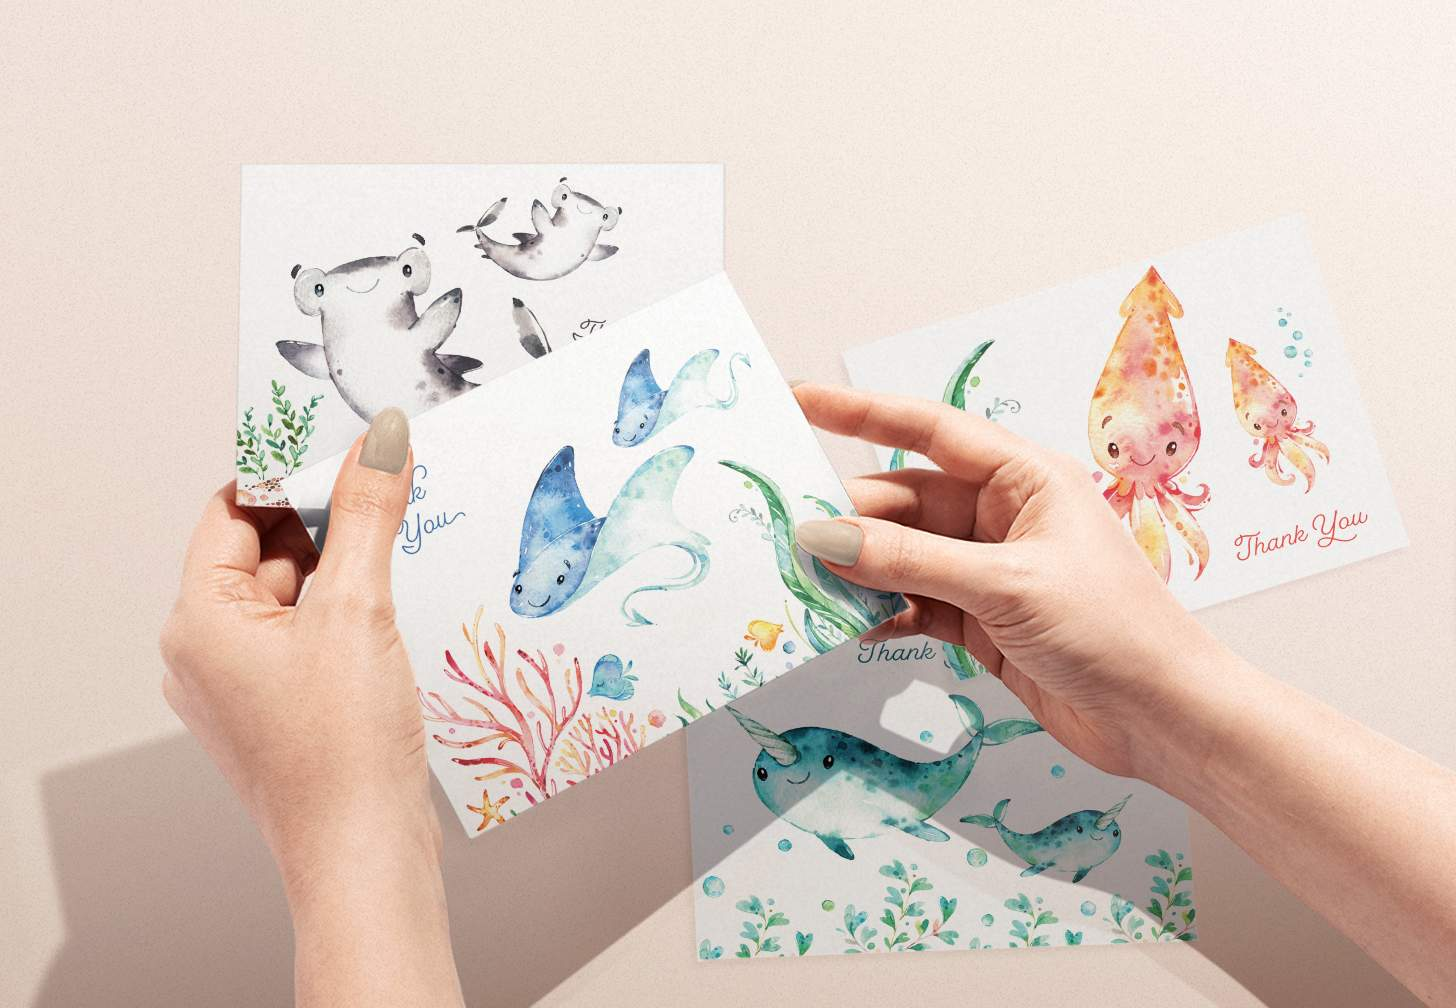 Woman's hands holding card with mother and baby sting ray design with shark, squid, and narwhal cards in background